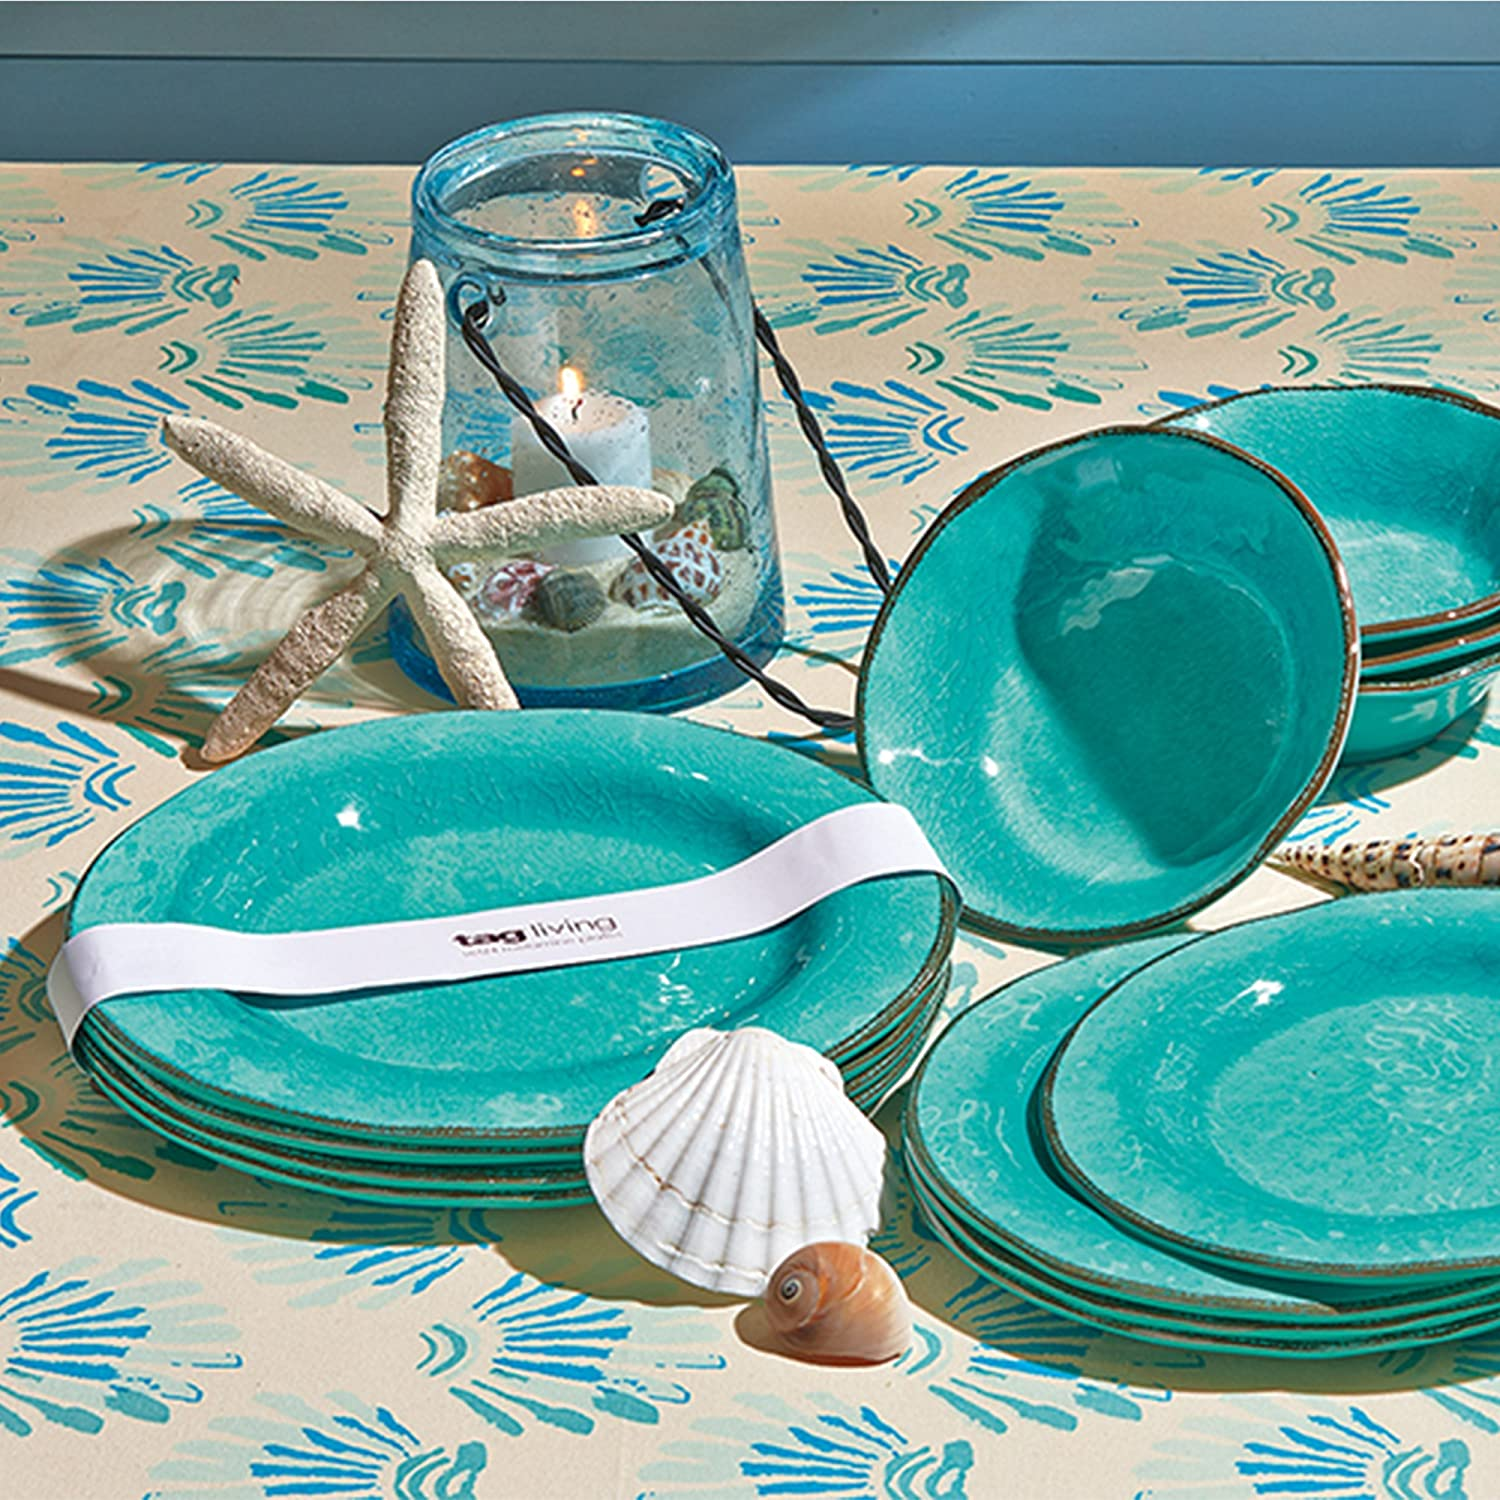 Veranda Melamine Dinner Plate Durable Ocean Blue tag BPA-Free and Great for Outdoor or Casual Meals Set of 4